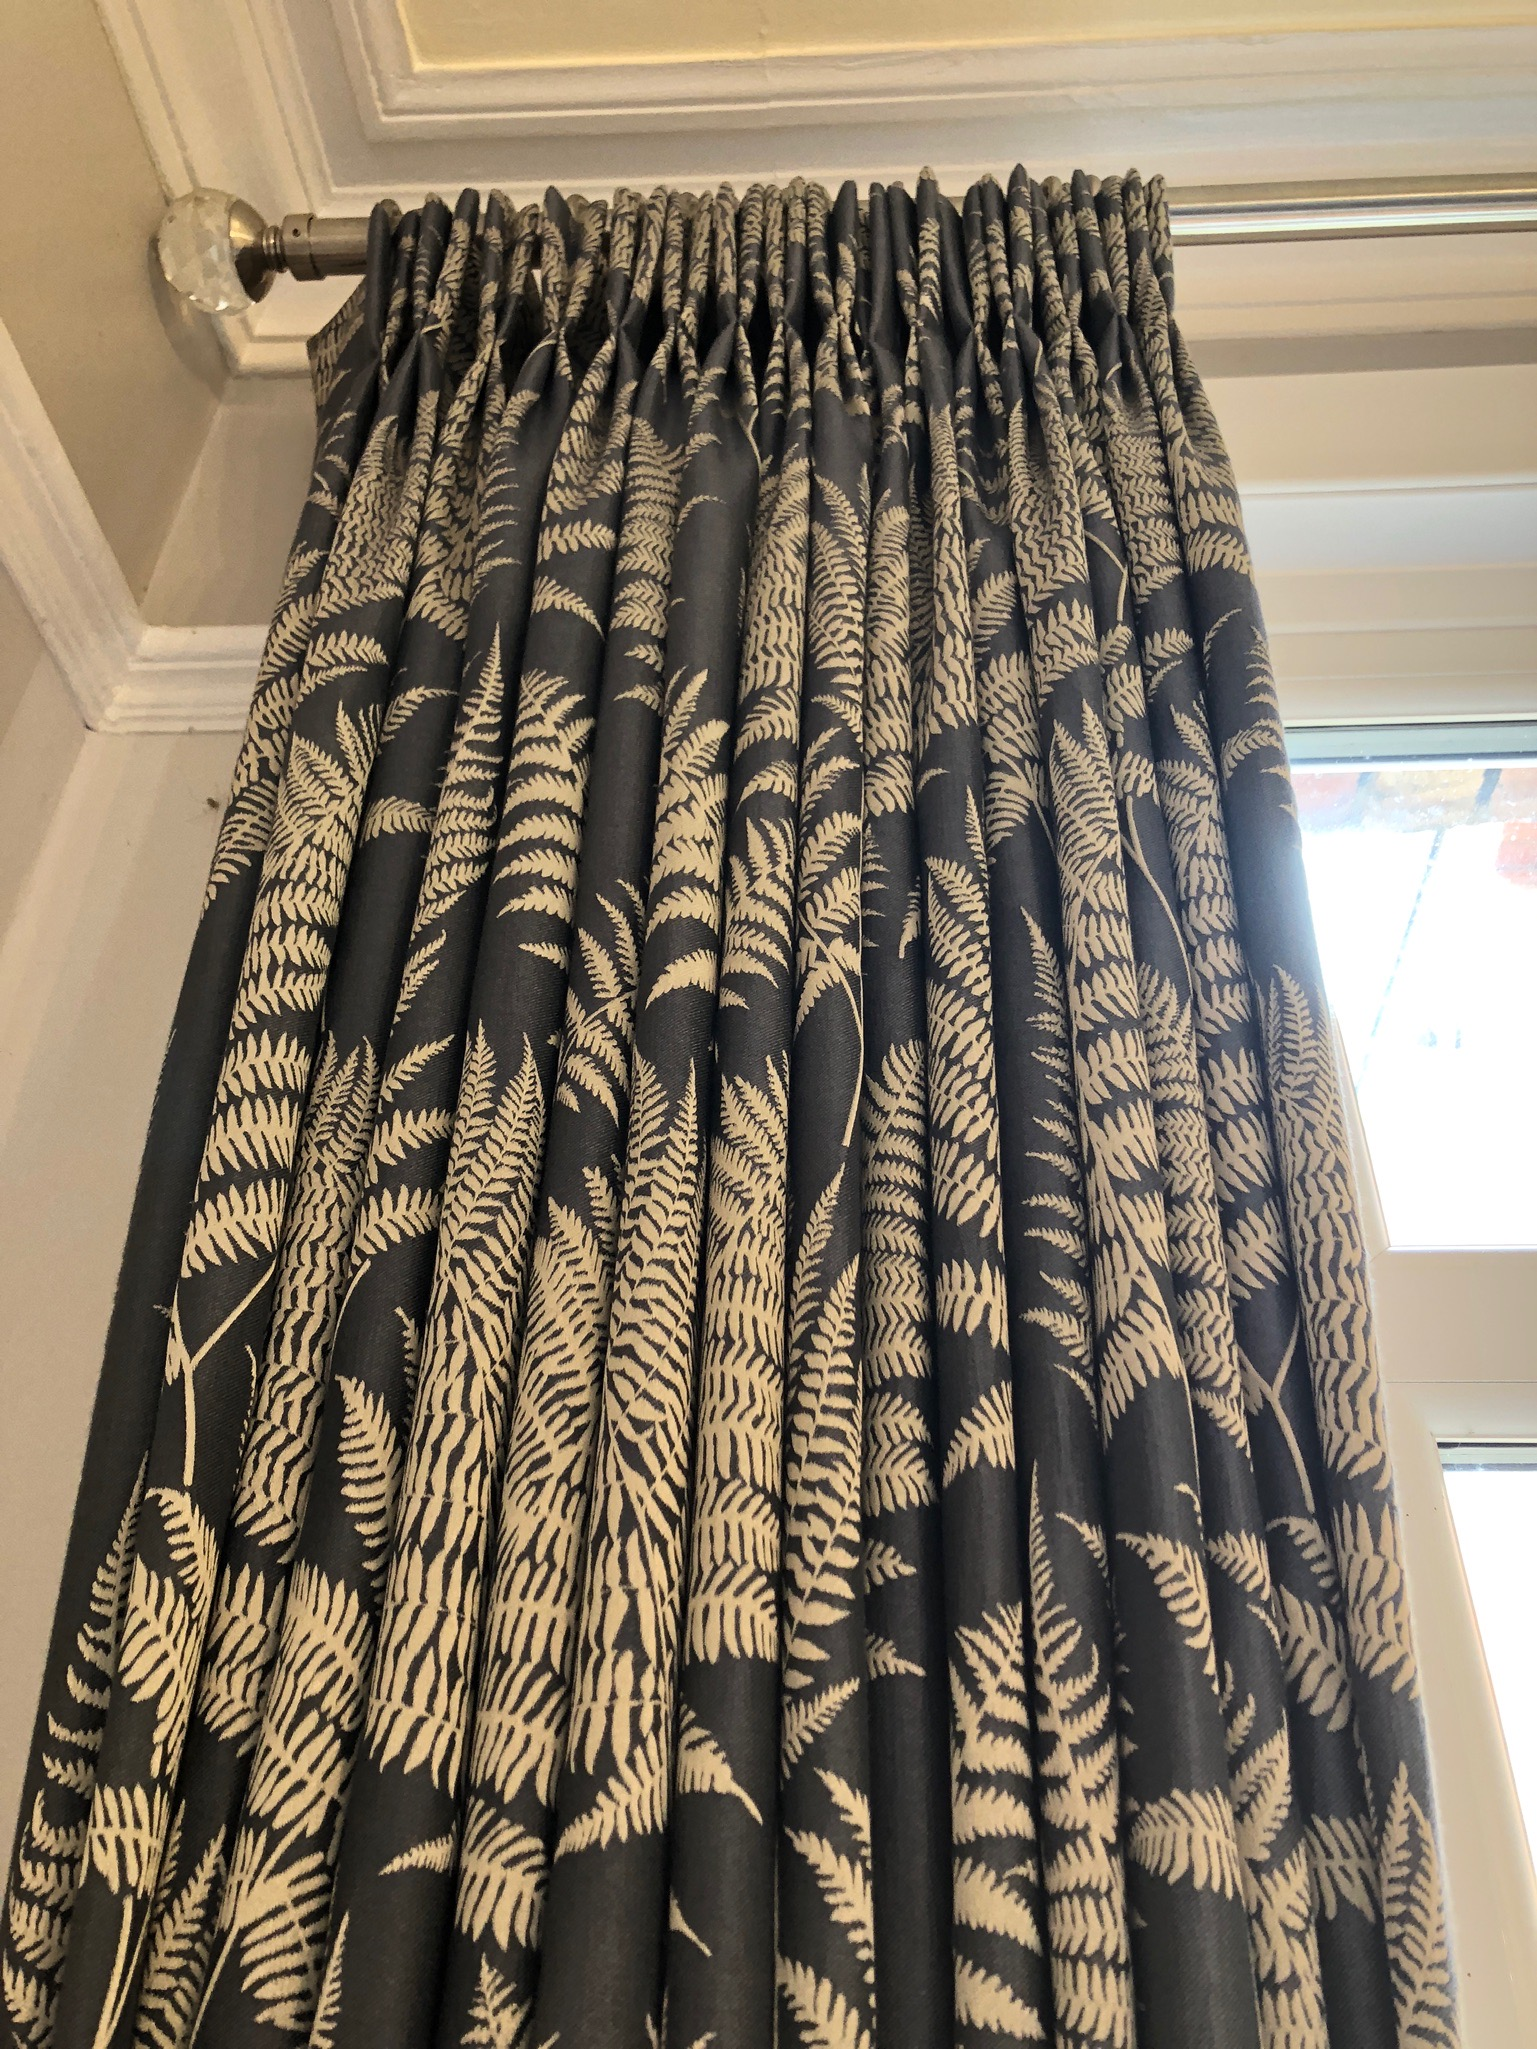 double pinch pleat curtains in navy